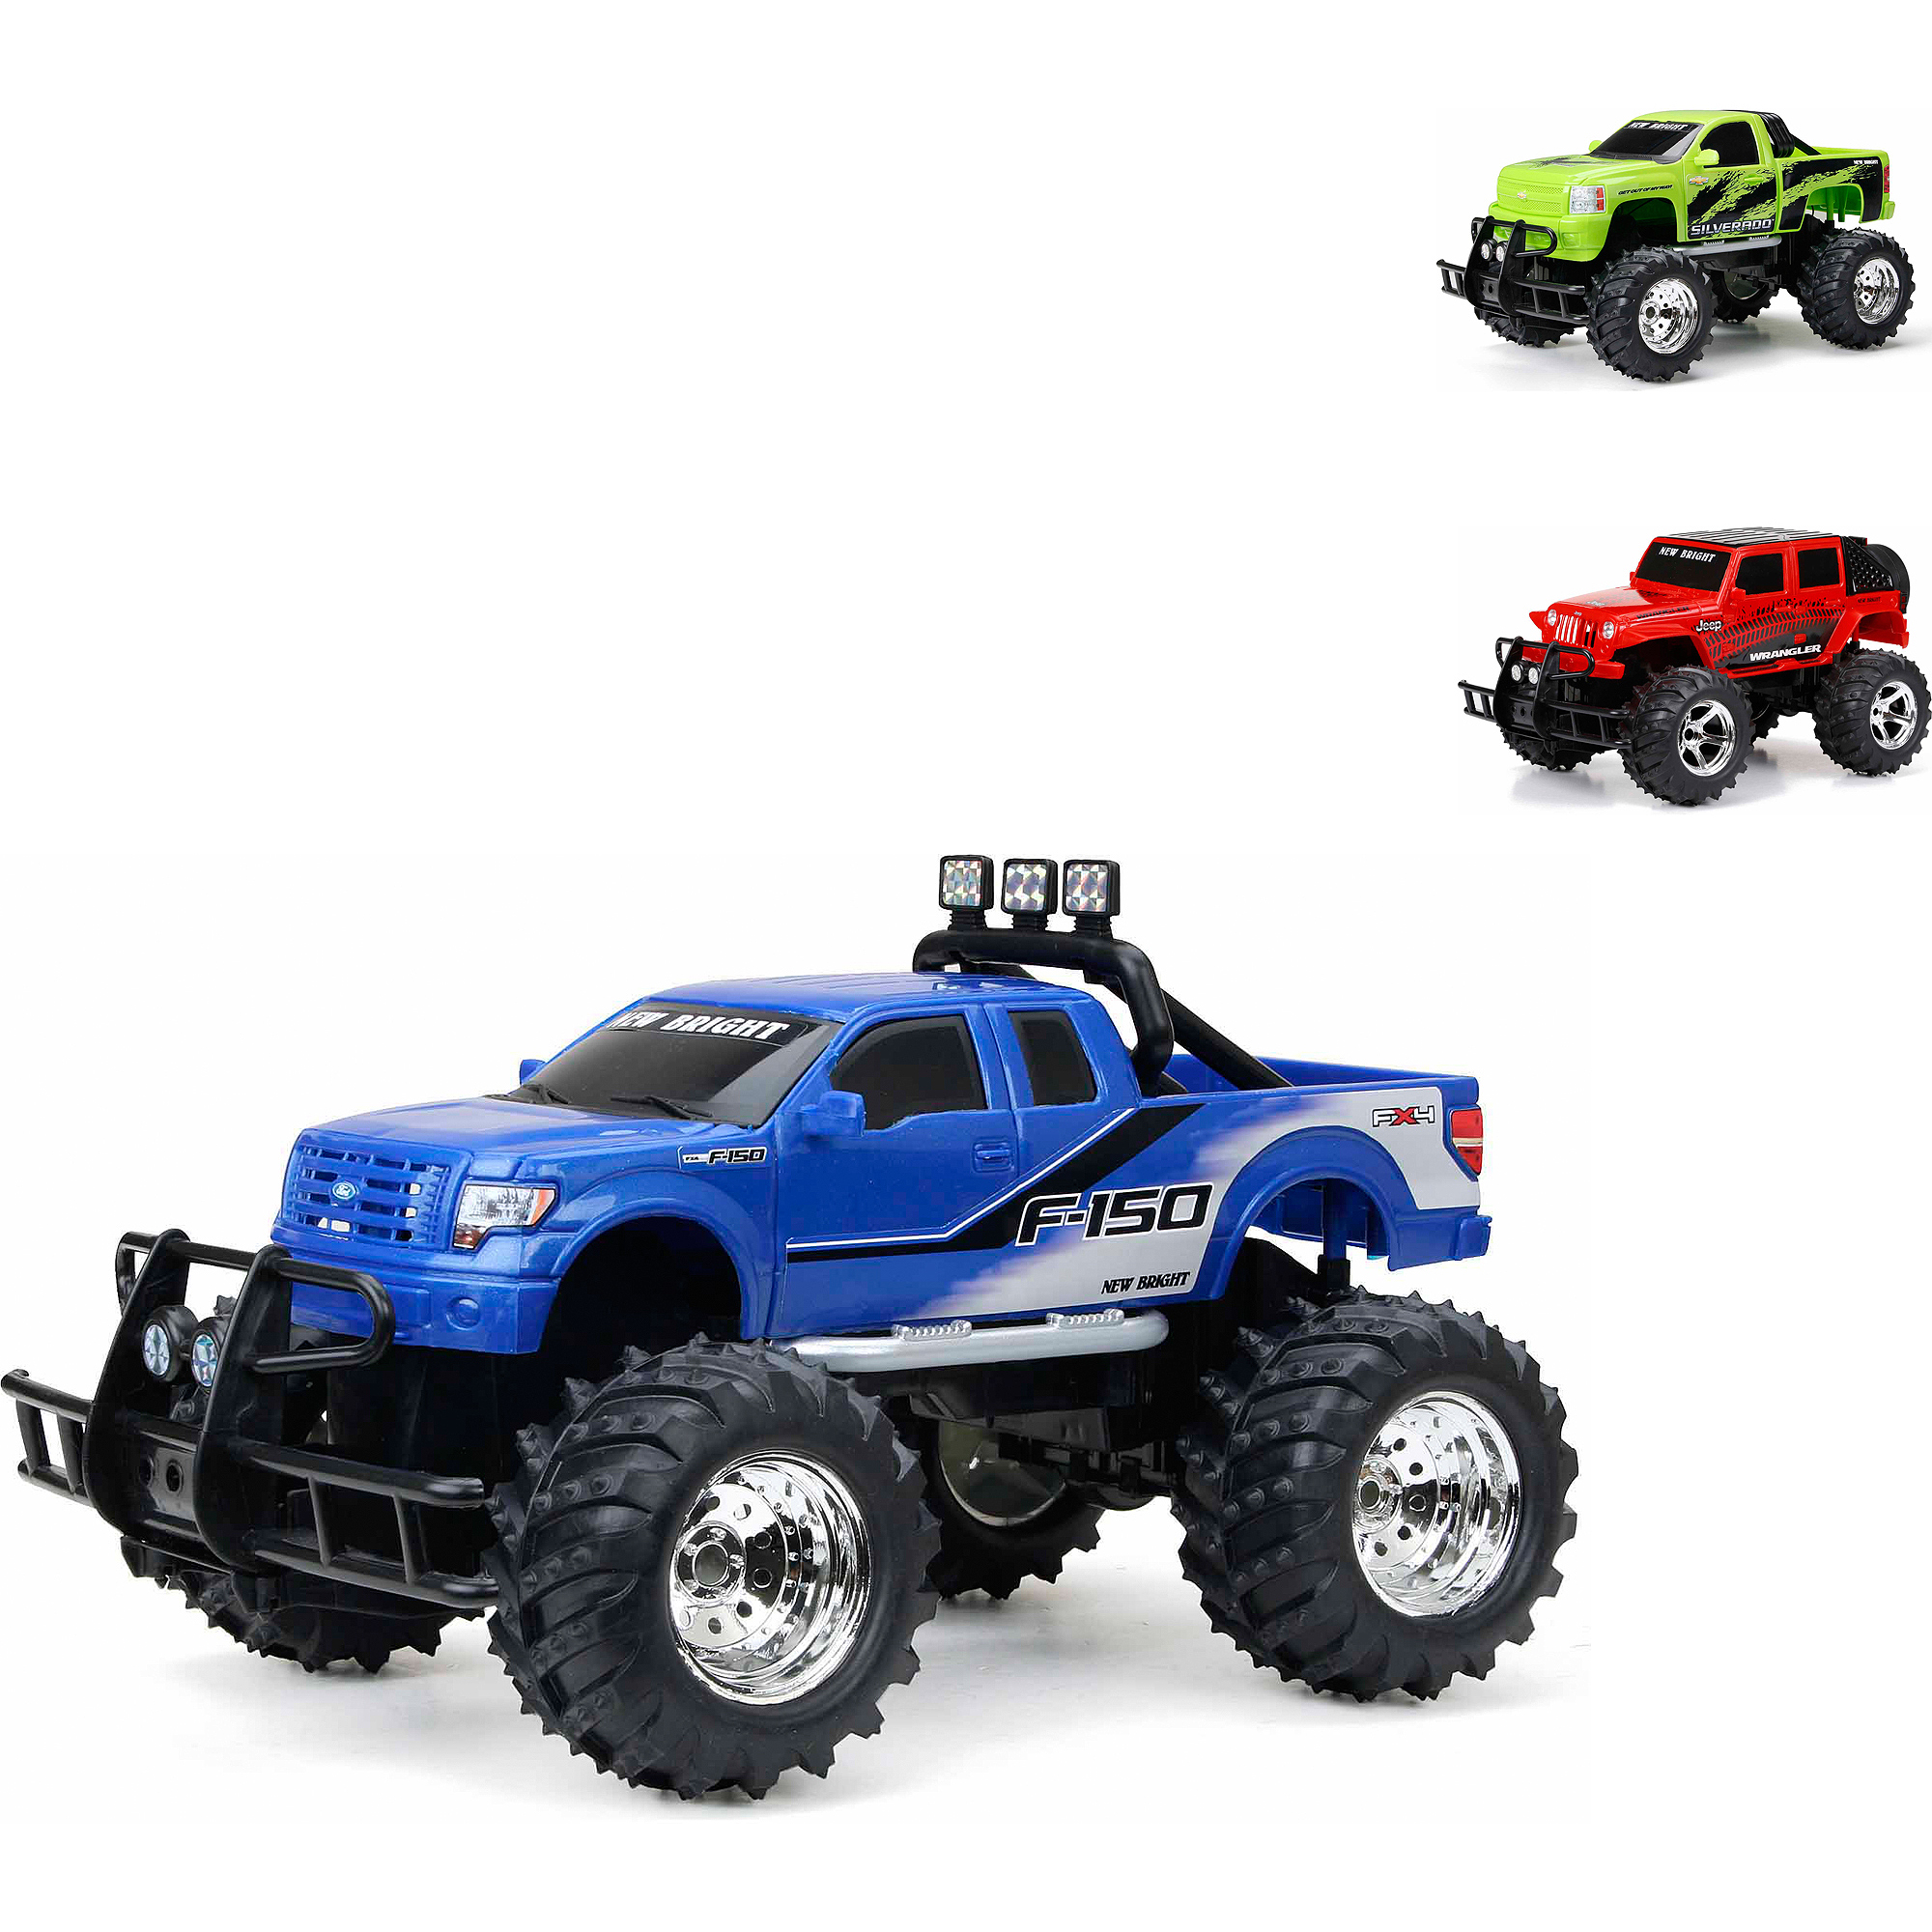 New Bright 1:14 Radio Control Full-Function 6.4V Ford F-150 & Deep, in colors Blue, Red, Green